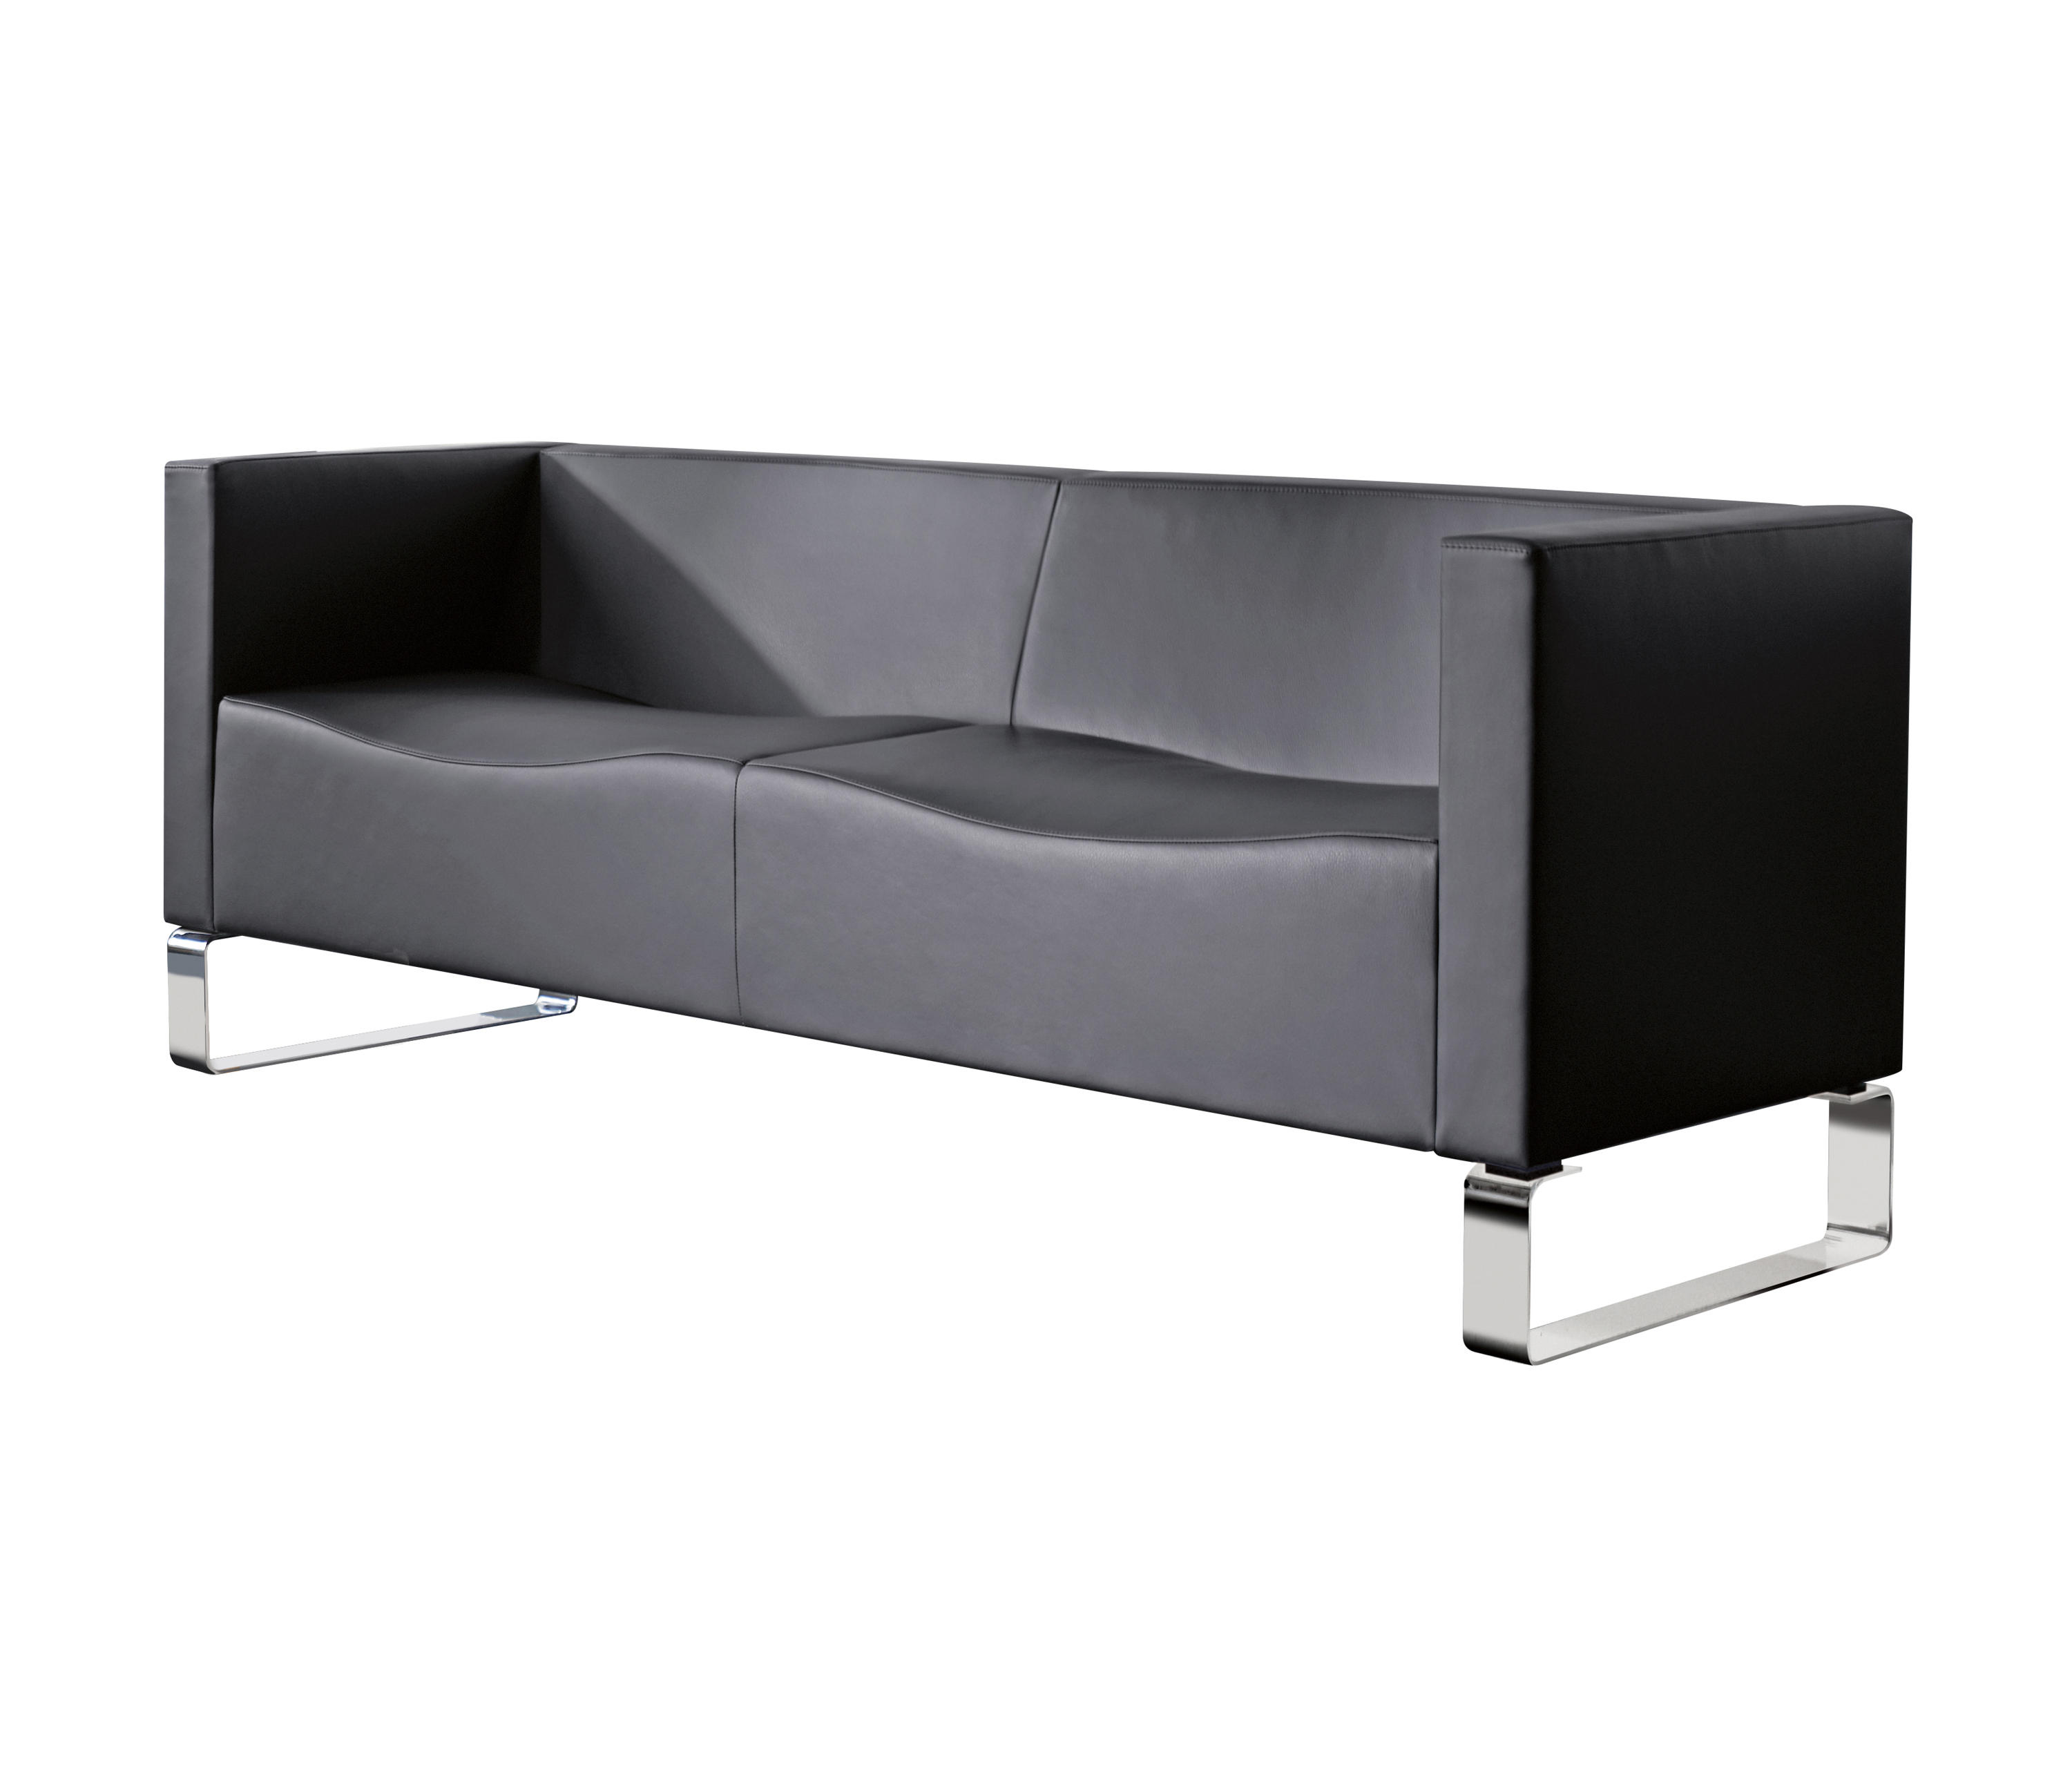 Lounge Drehsessel Concept C Lounge Sofas From Klöber Architonic